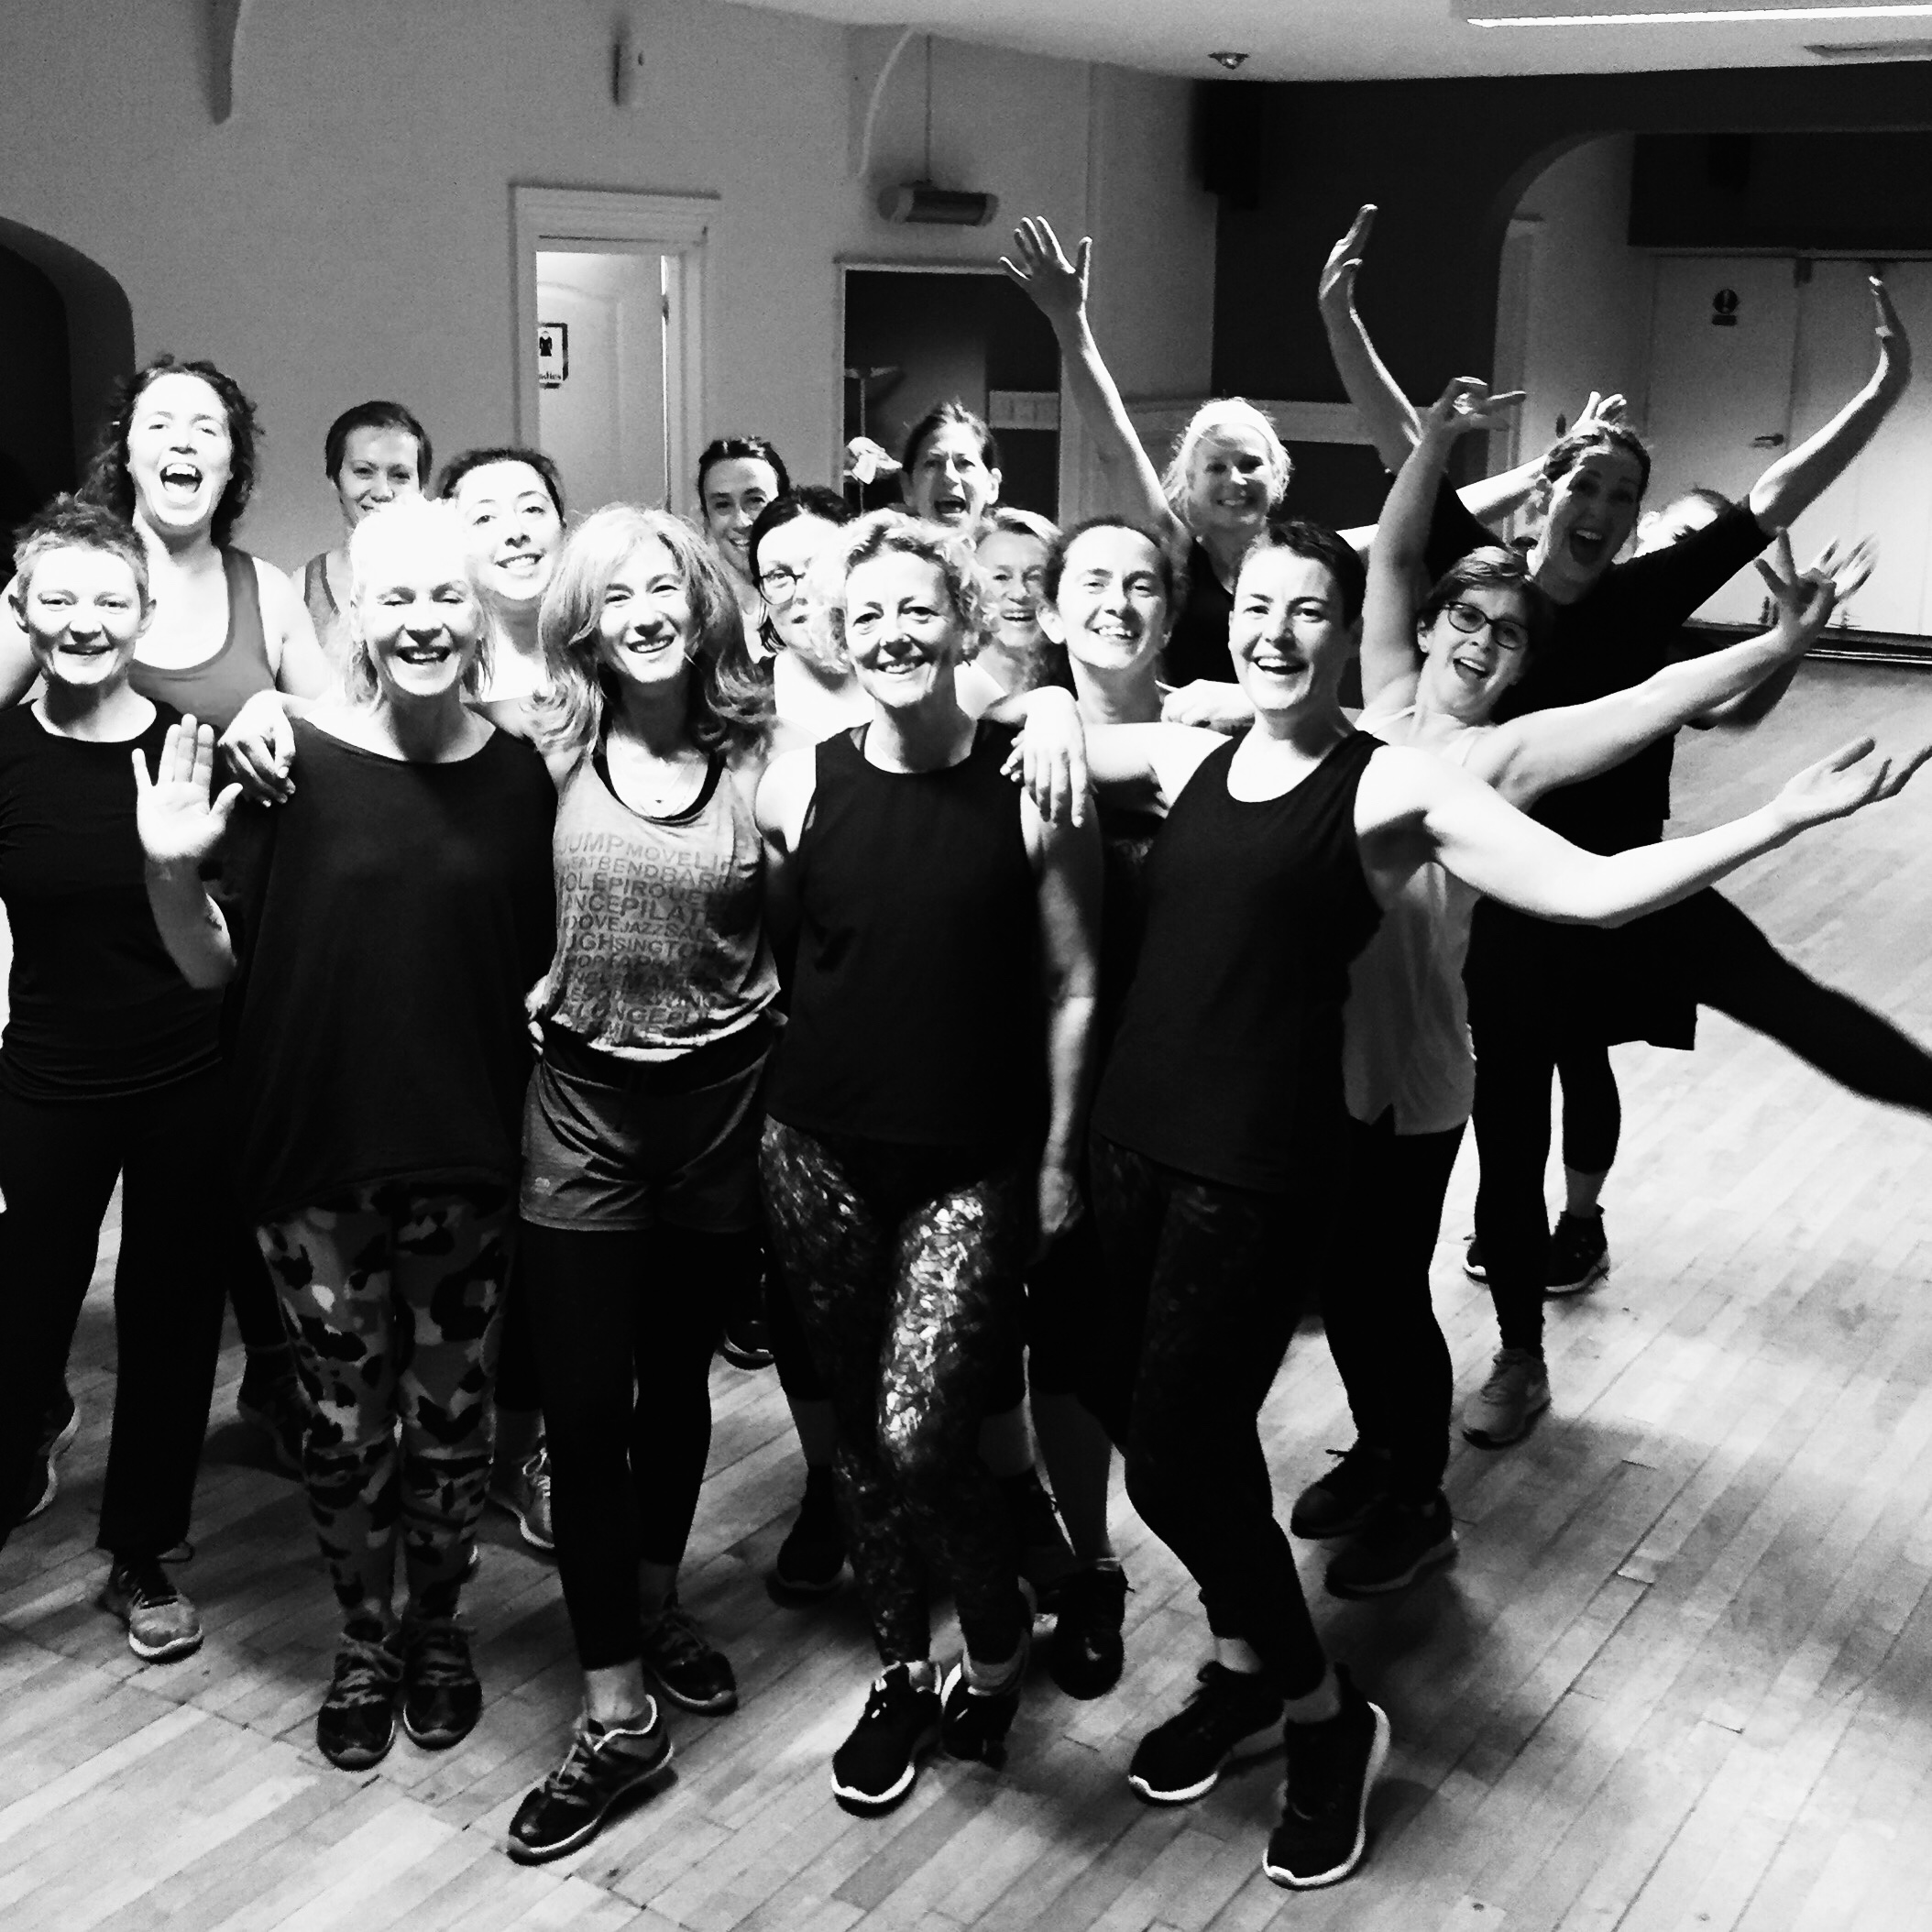 Body Beat - Dance to new and old tracks - styles include salsa, samba, jive, cha cha, tango, paso and often pop type steps thrown in too! Classes are fun, high energy and will make you SWEAT!Fridays @ Brockwell Lido (Studio 2) @ 9.30amSundays @ The Grafton Dance Centre @ 9.45am